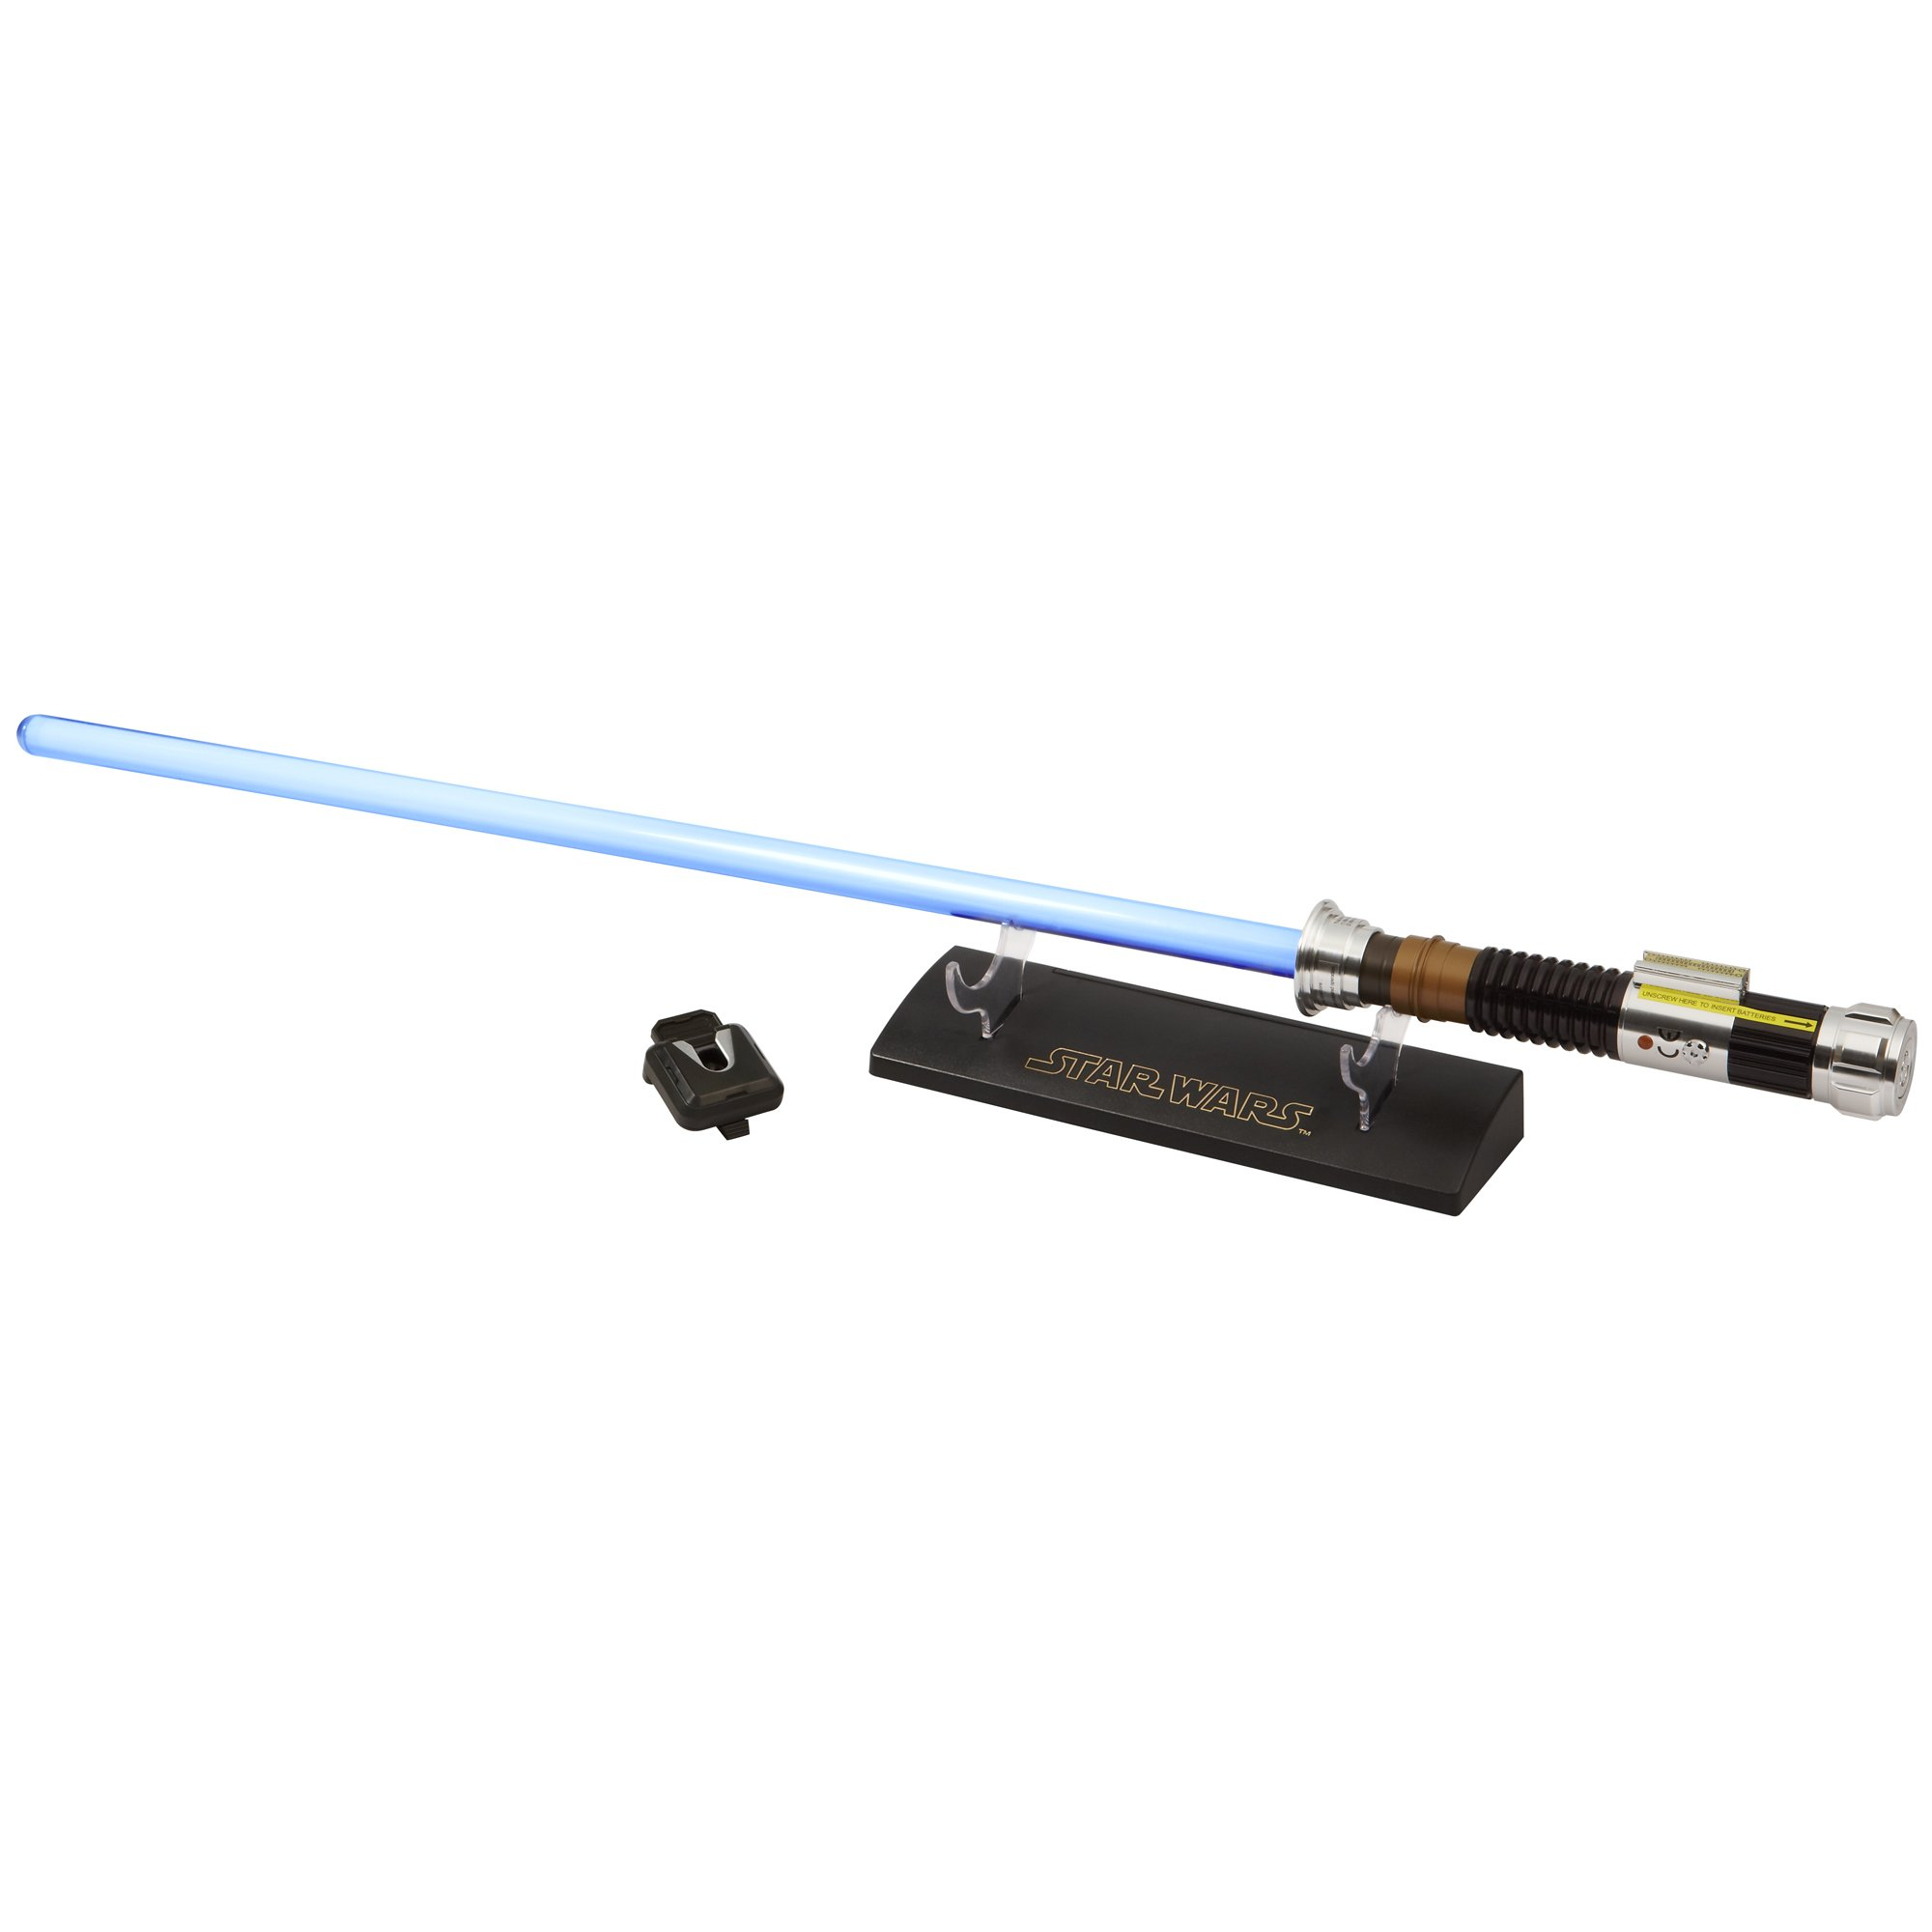 Star Wars Signature Series Force FX Lightsaber w/Removable Blade - Obi-Wan Kenobi by Star Wars (Image #3)